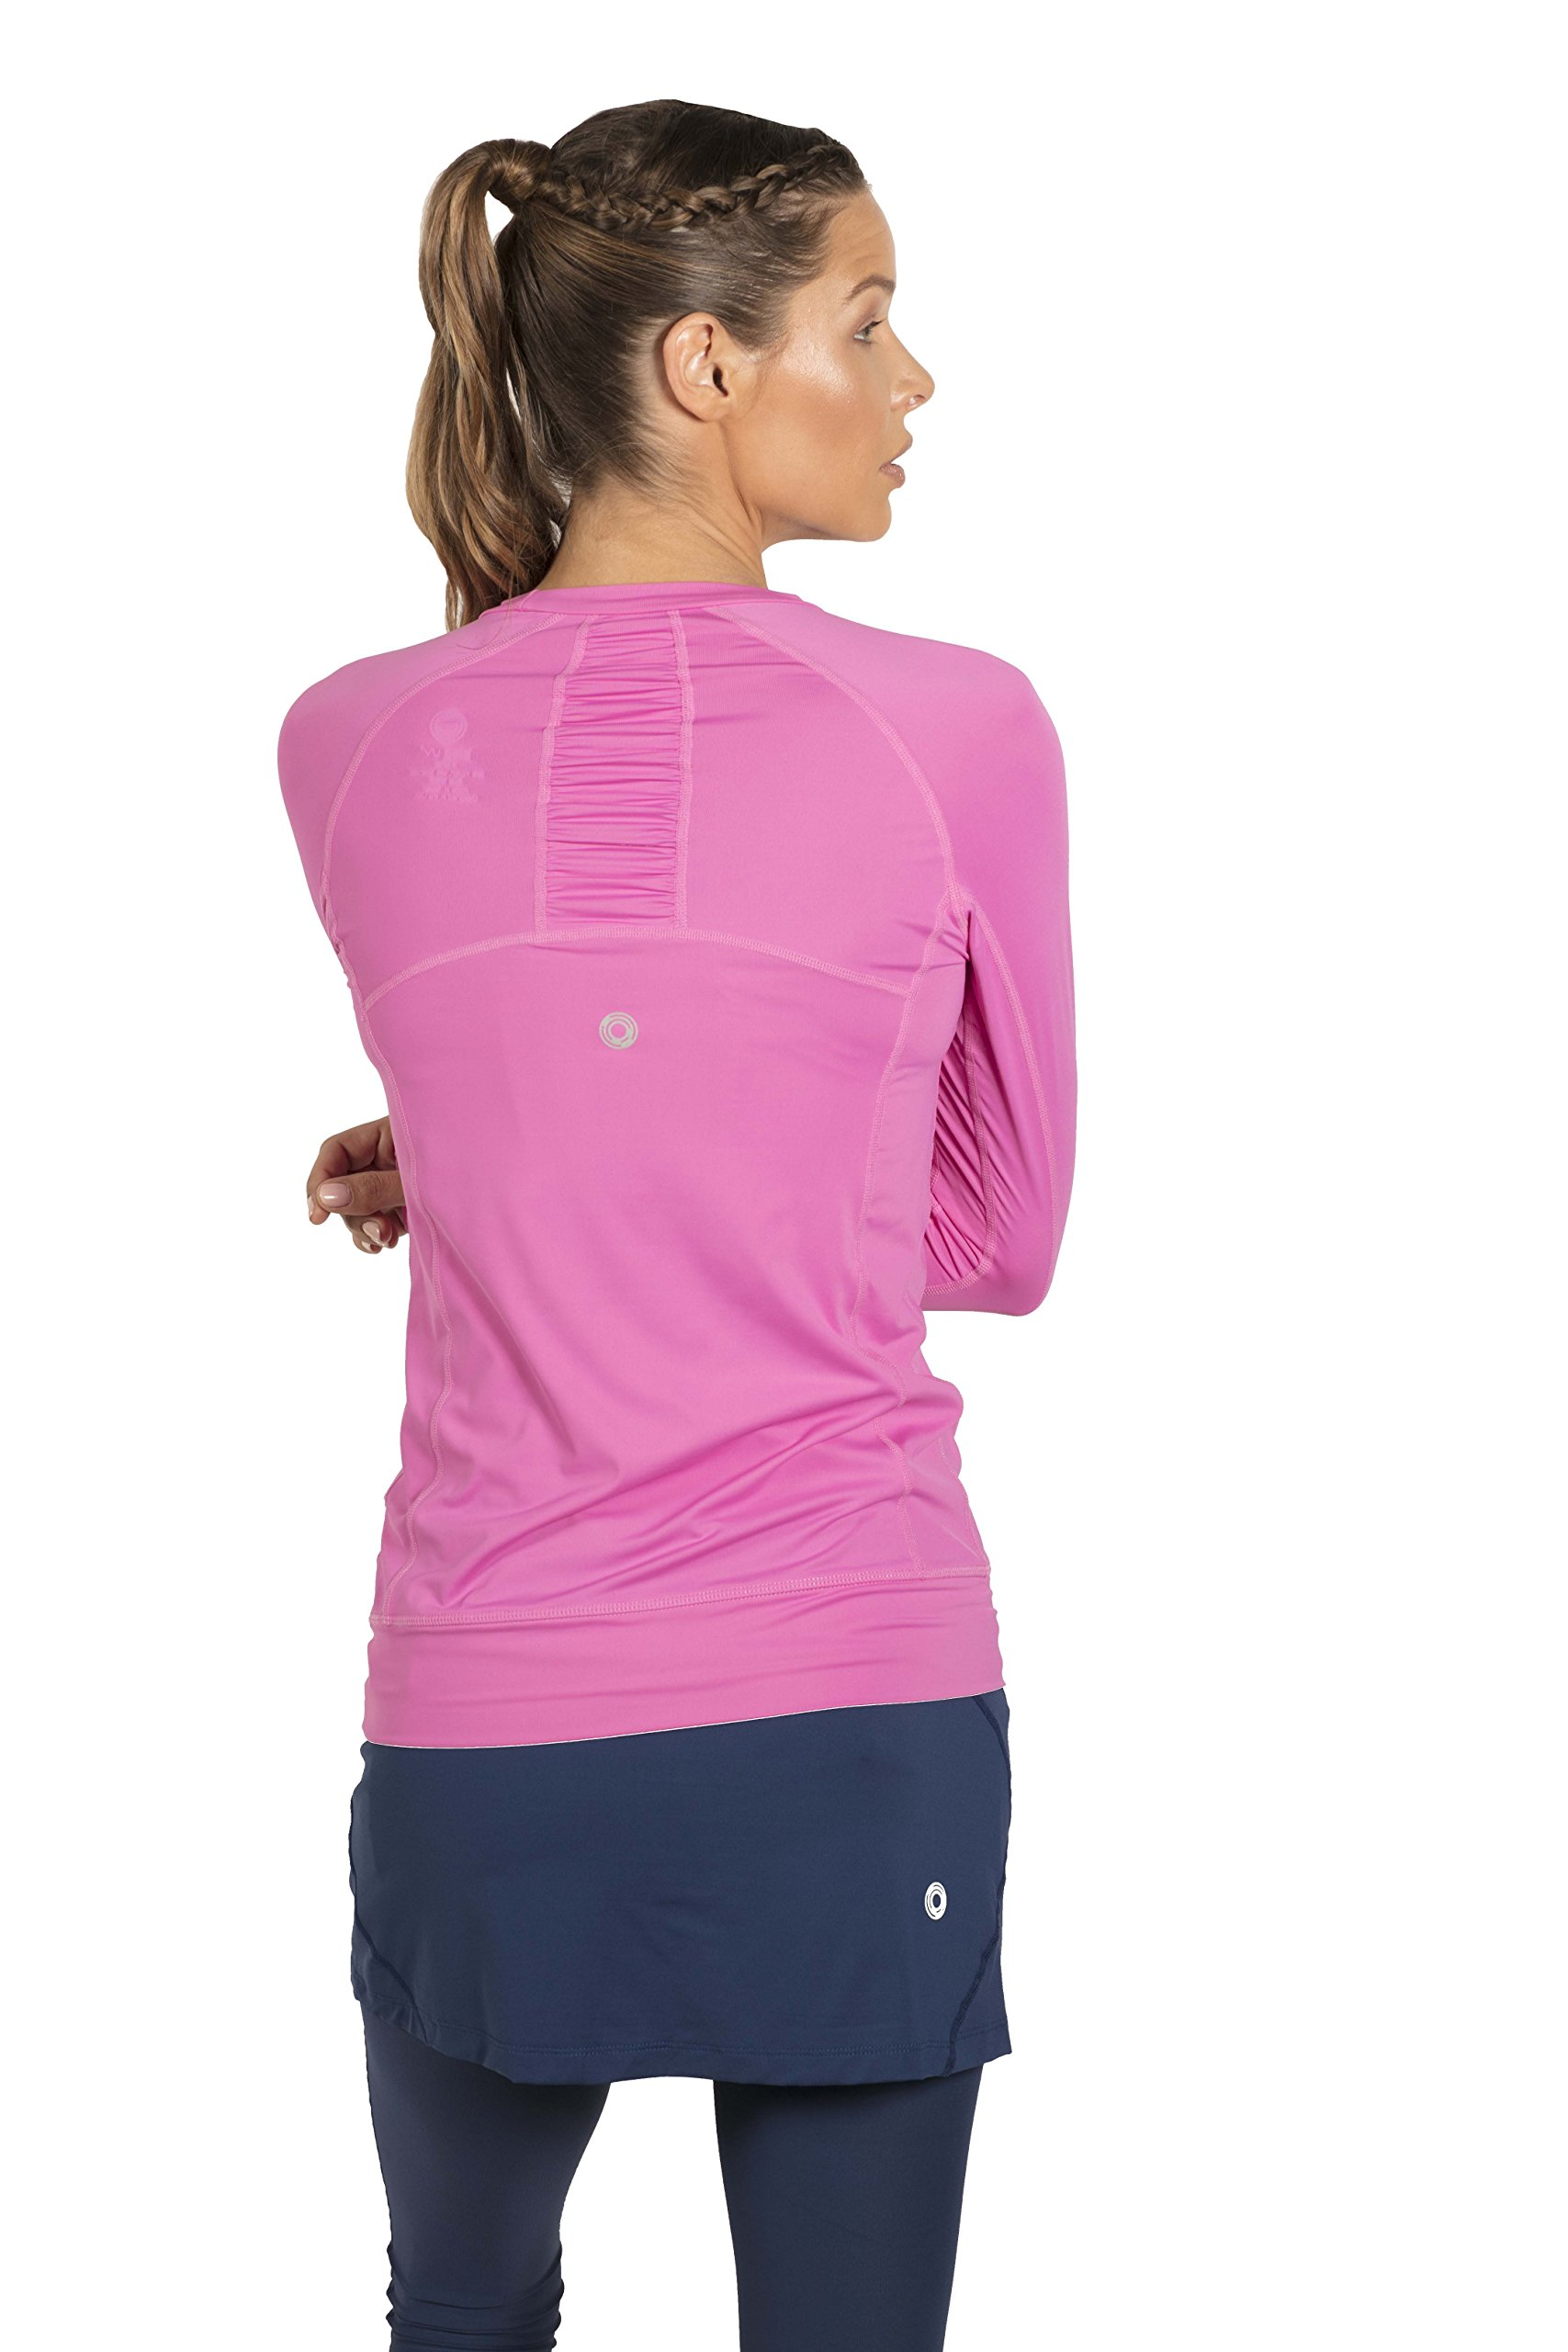 BloqUV Women's Sun Protective Long-Sleeve Pullover T-Shirt, Bubblegum (X-Small)